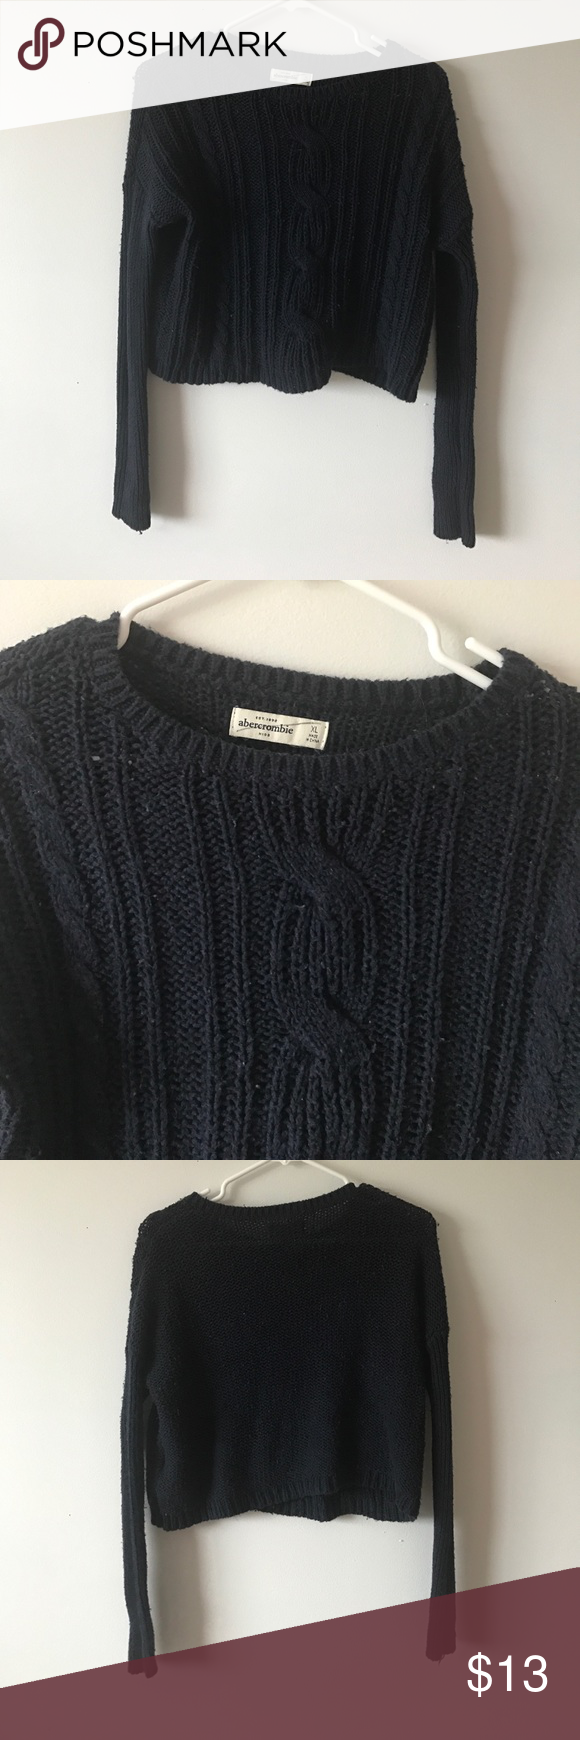 Navy Blue Cropped Sweater | Abercrombie fitch, Navy blue and Flaws